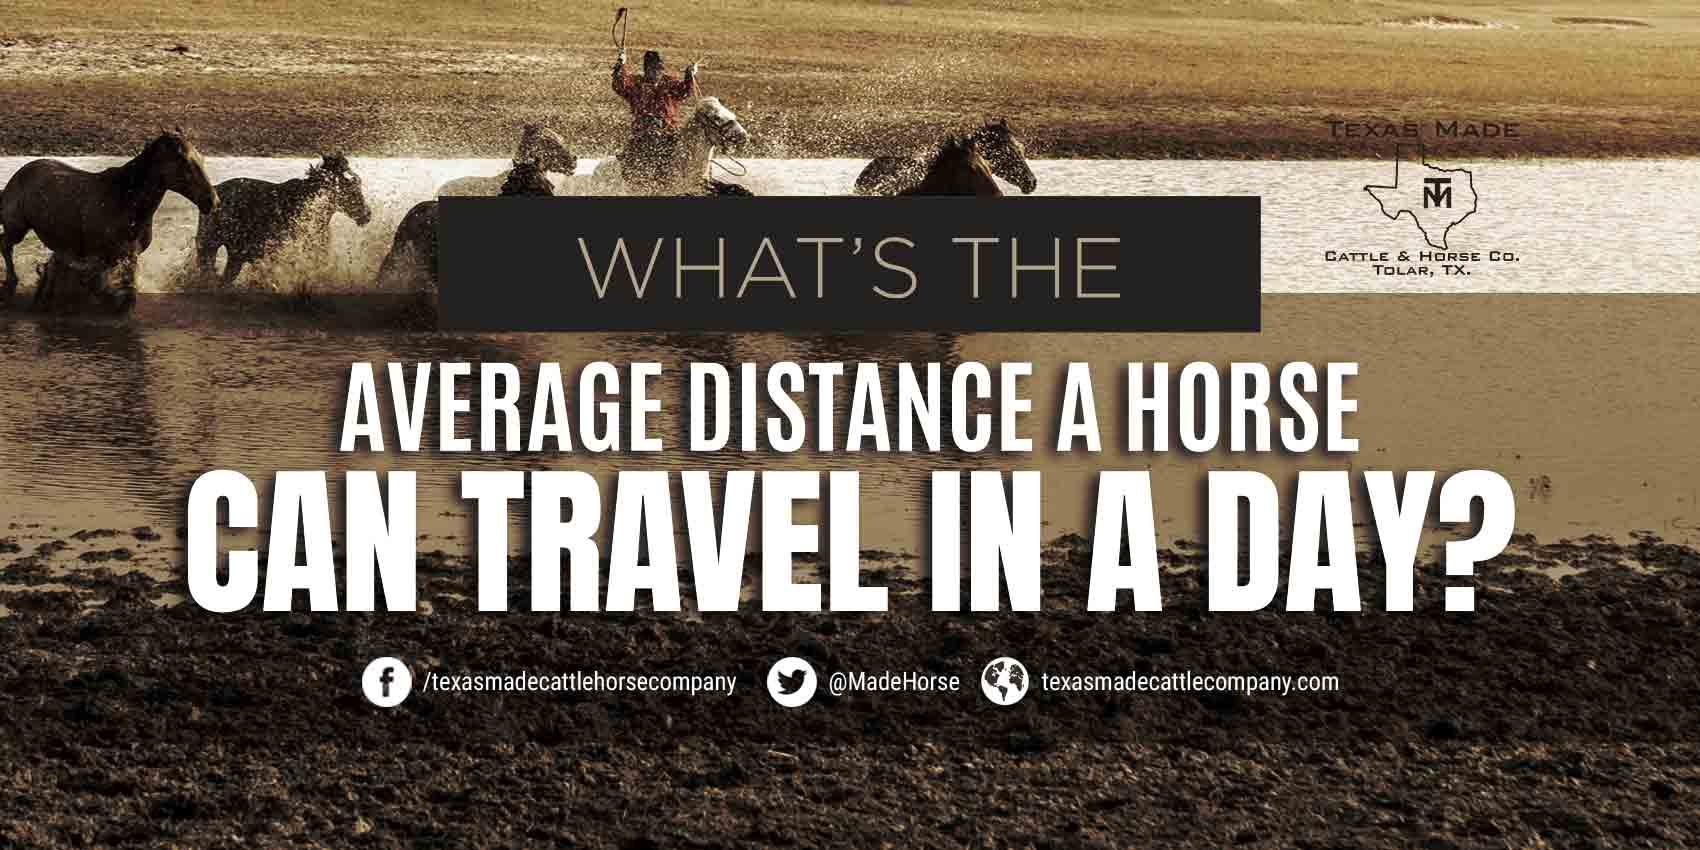 What's the Average Distance a Horse Can Travel in a Day?